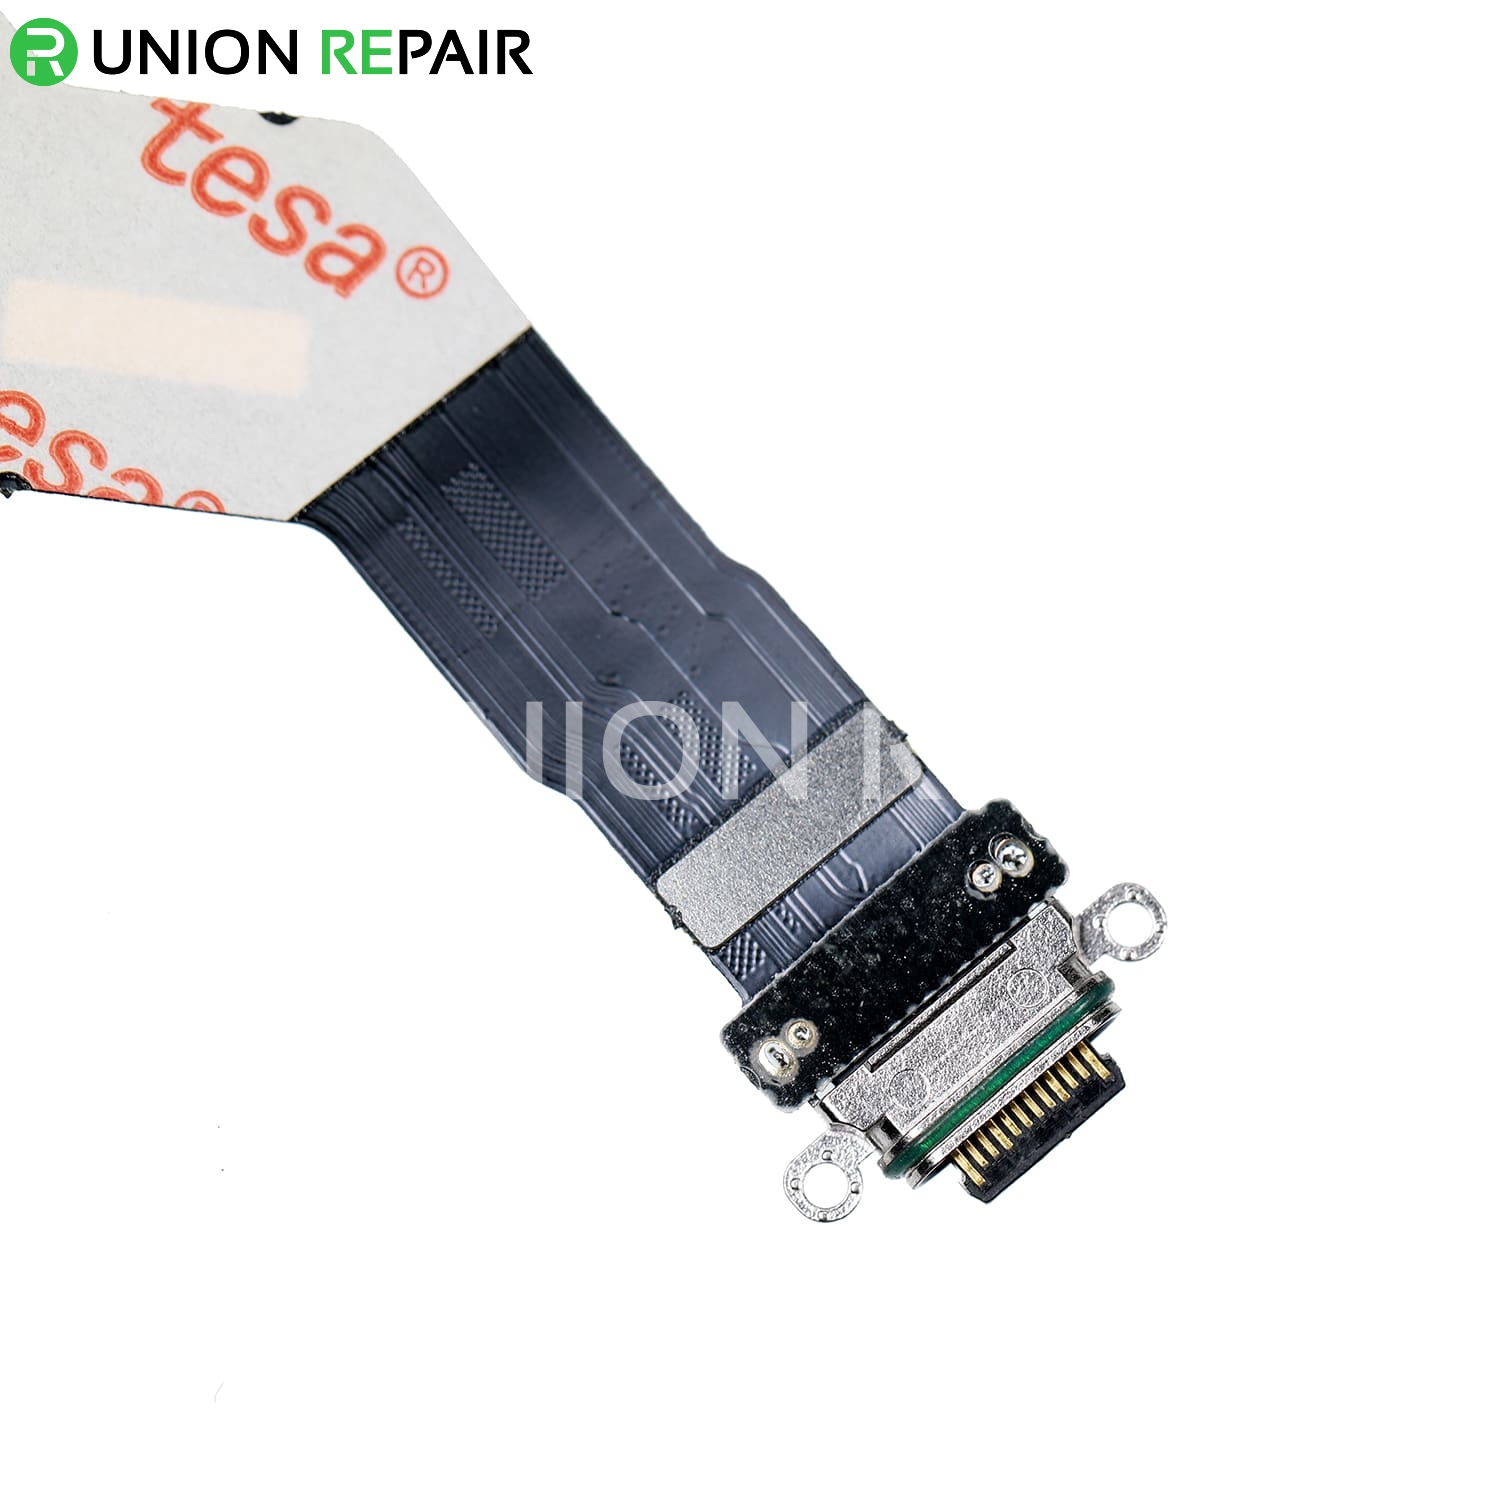 Replacement for OnePlus 7 USB Charging Port Flex Cable